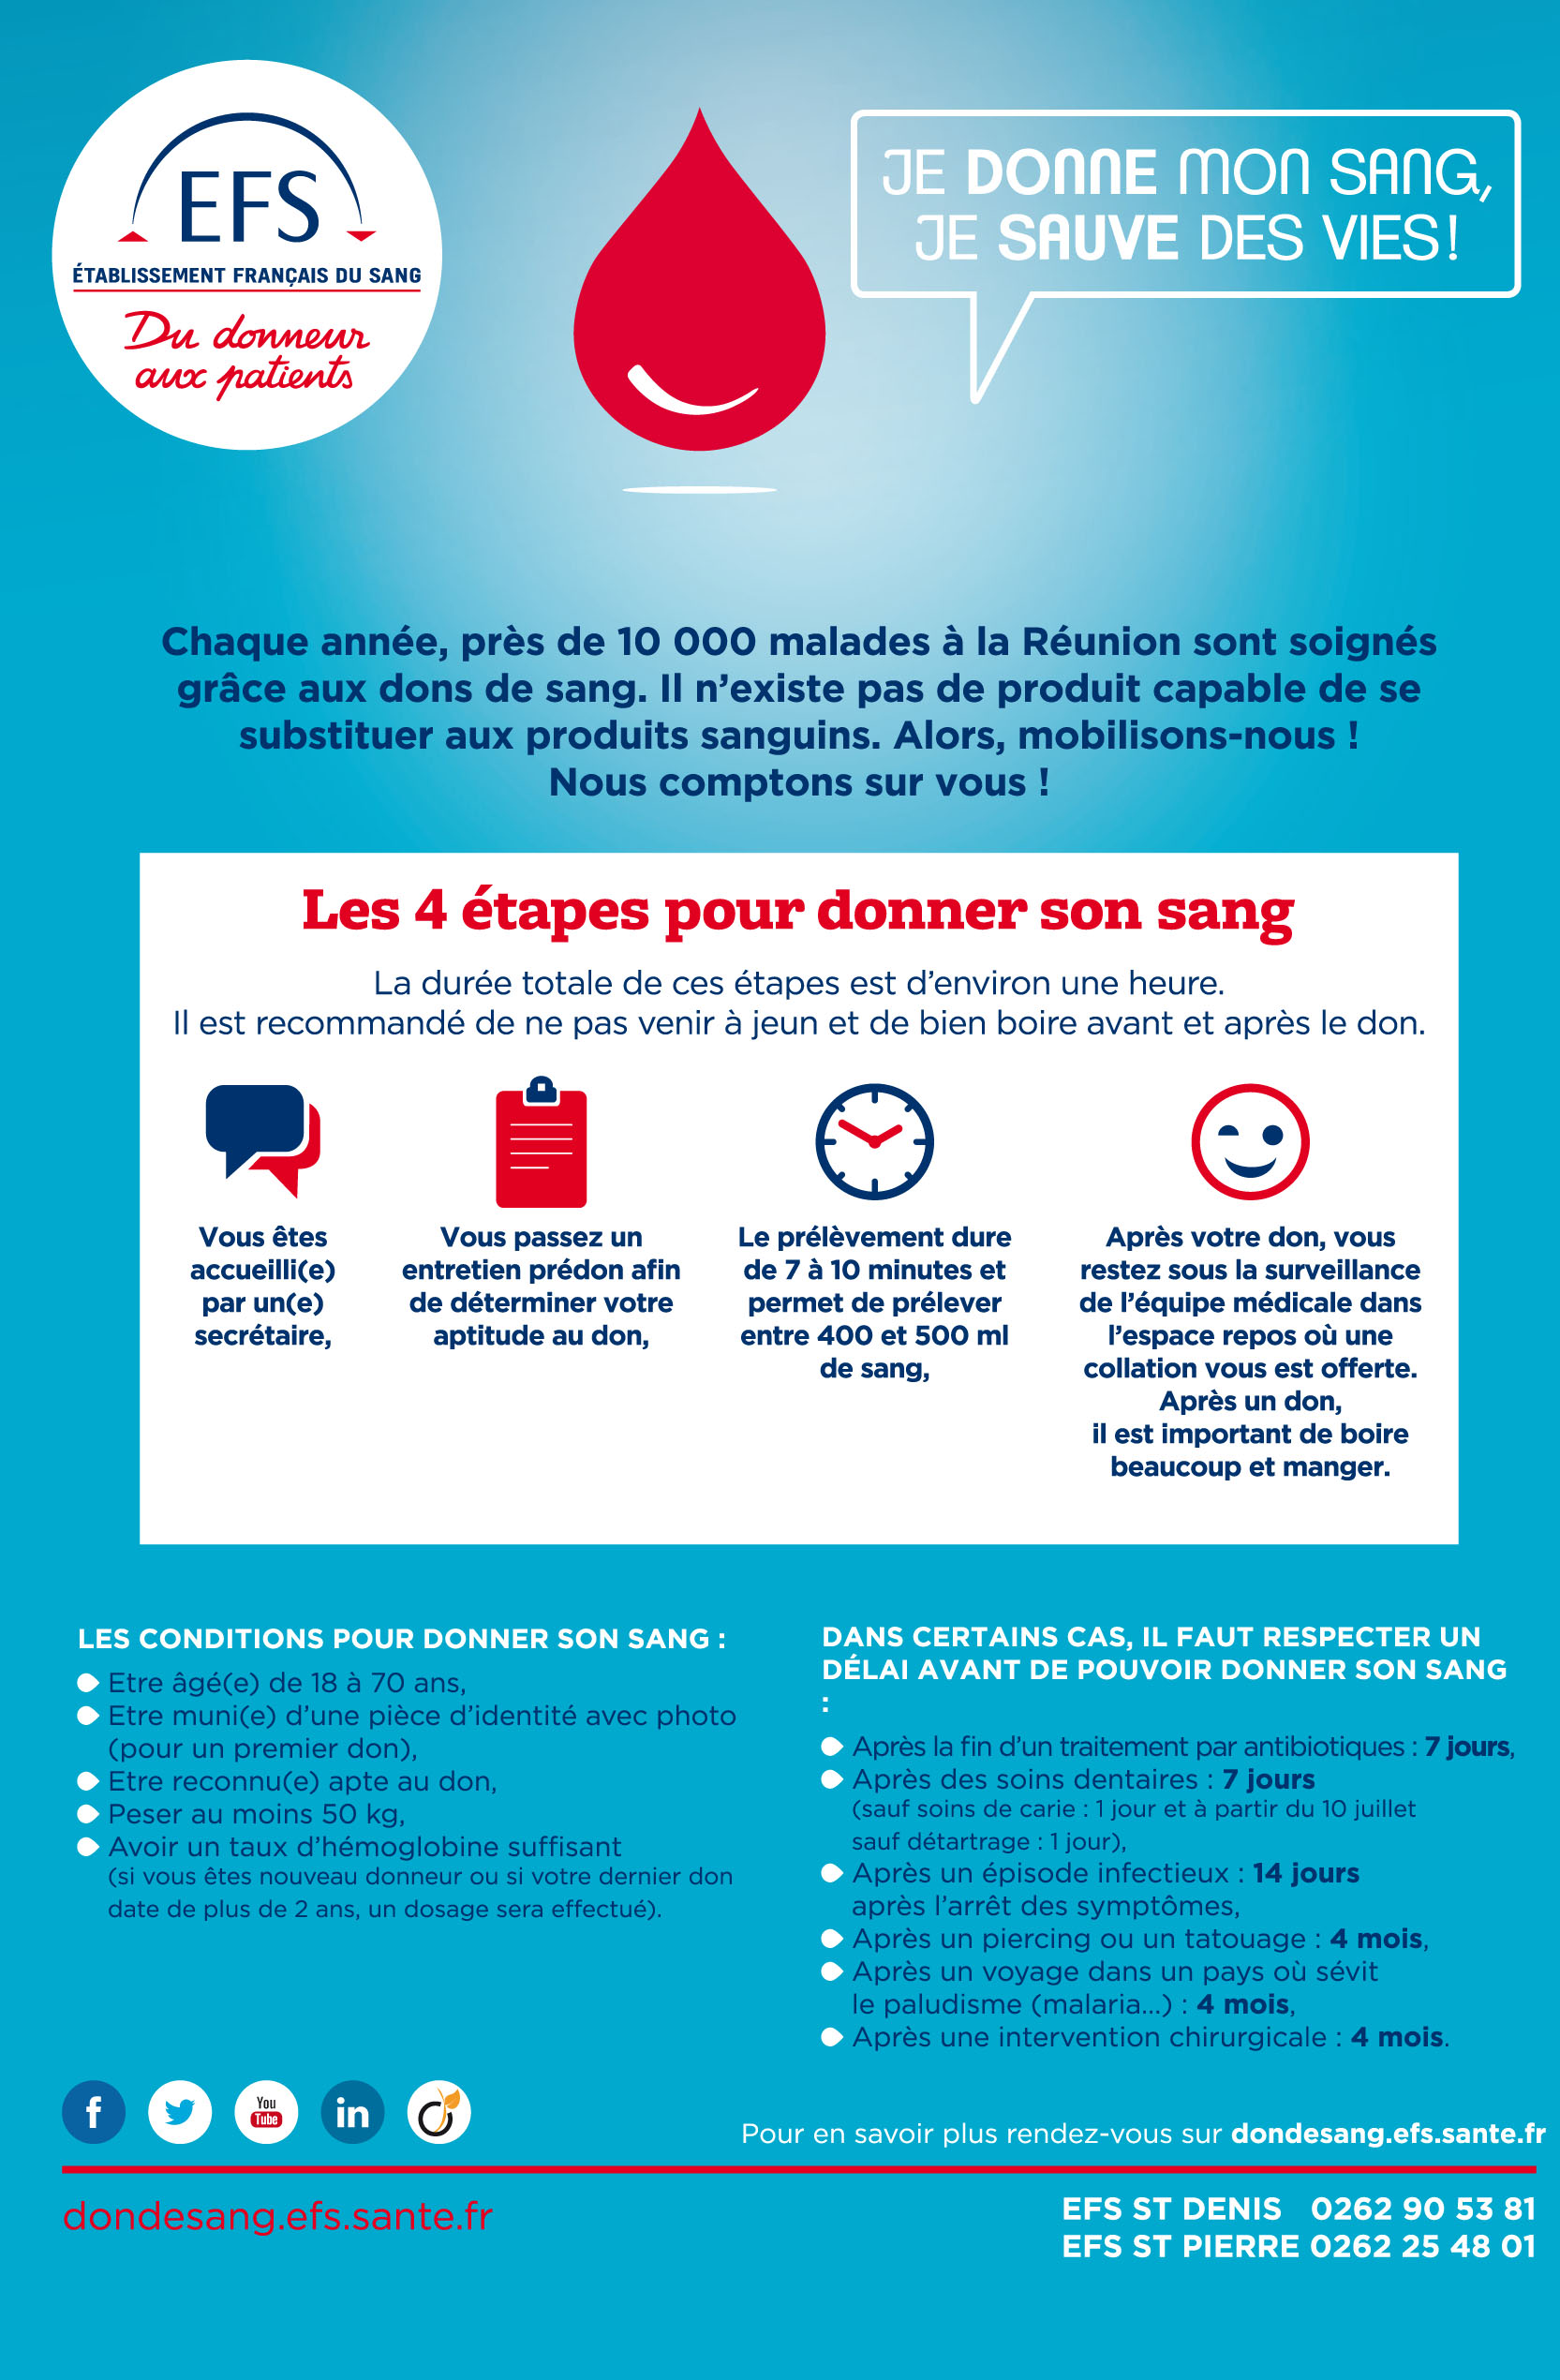 ETAPES ET CONDITIONS POUR DONNER SON SANG